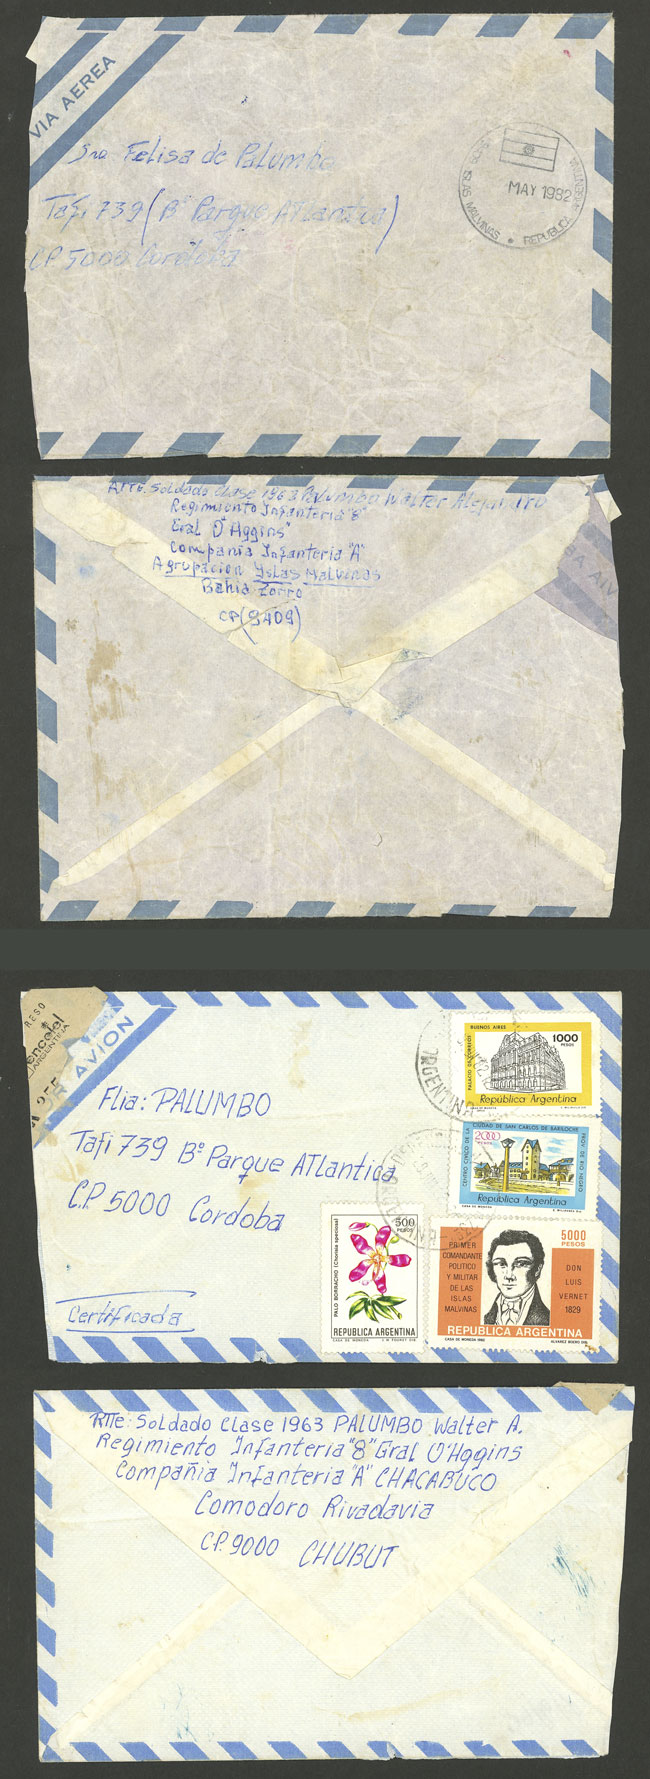 Lot 1728 - falkland islands/malvinas postal history -  Guillermo Jalil - Philatino Auction #1949  WORLDWIDE + ARGENTINA: End-of-year general auction